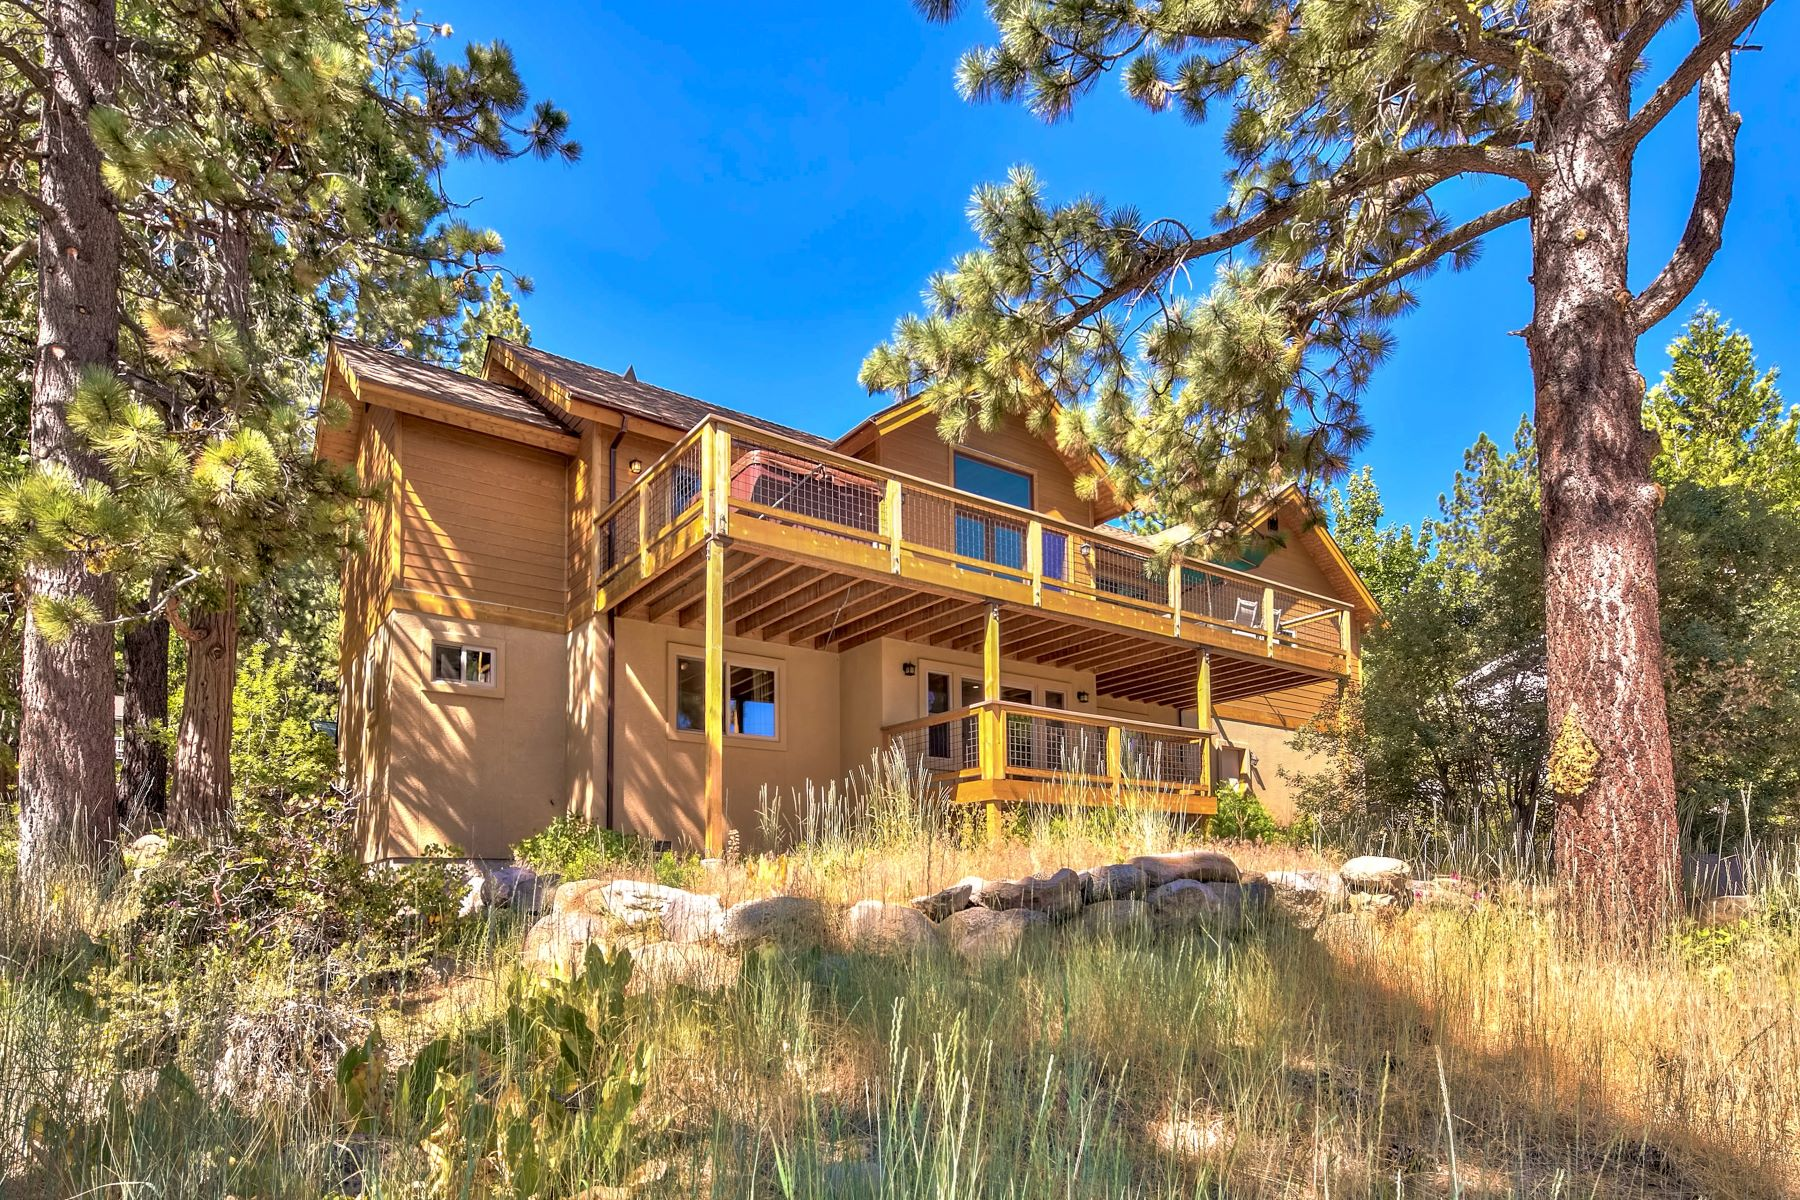 Single Family Homes for Active at Built with Love and Care 3050 Fabian Way Tahoe City, California 96145 United States